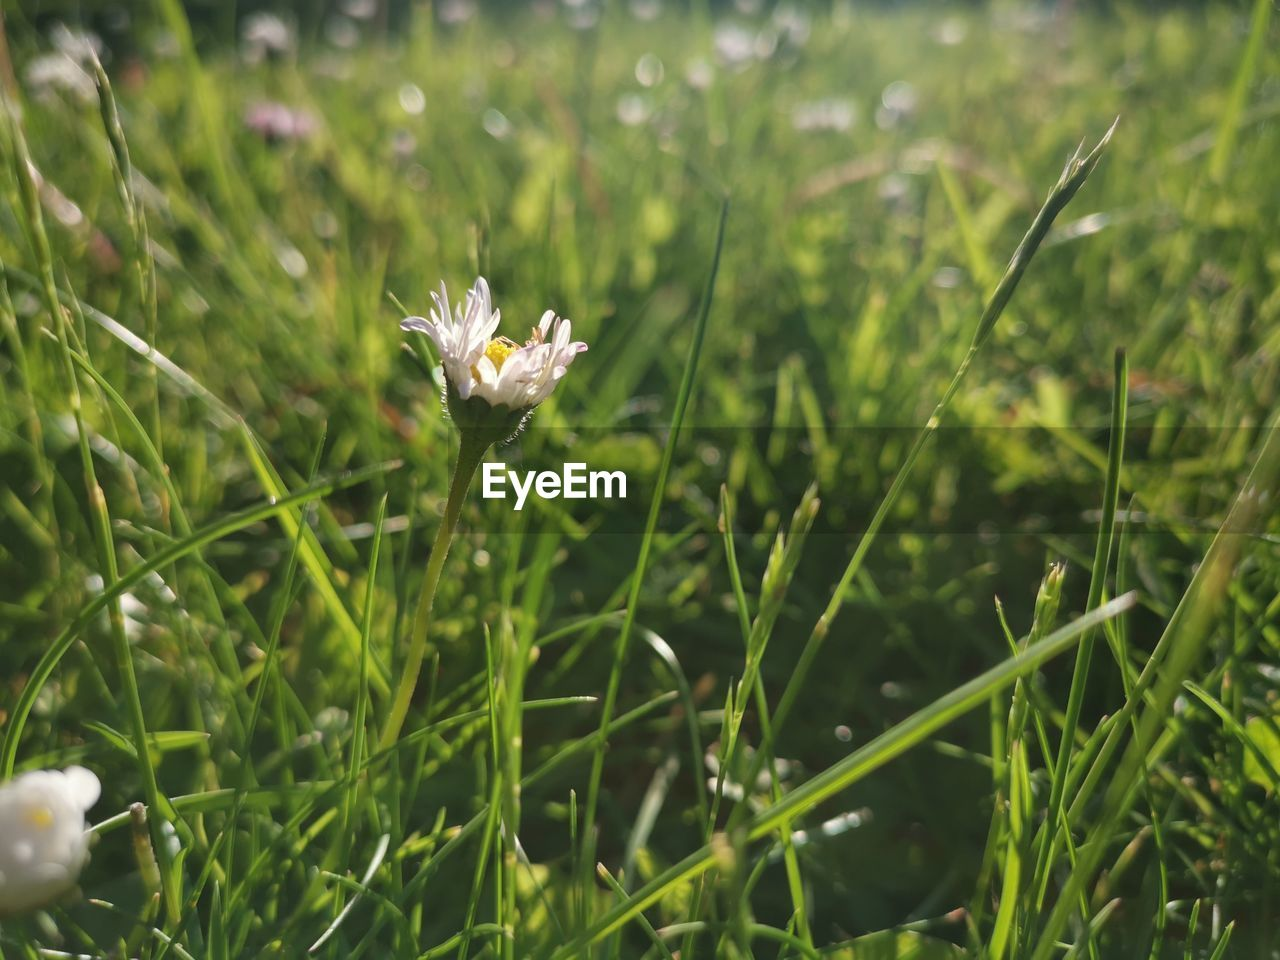 plant, growth, flowering plant, beauty in nature, flower, freshness, fragility, green color, vulnerability, field, nature, land, day, no people, petal, grass, close-up, selective focus, focus on foreground, white color, flower head, outdoors, blade of grass